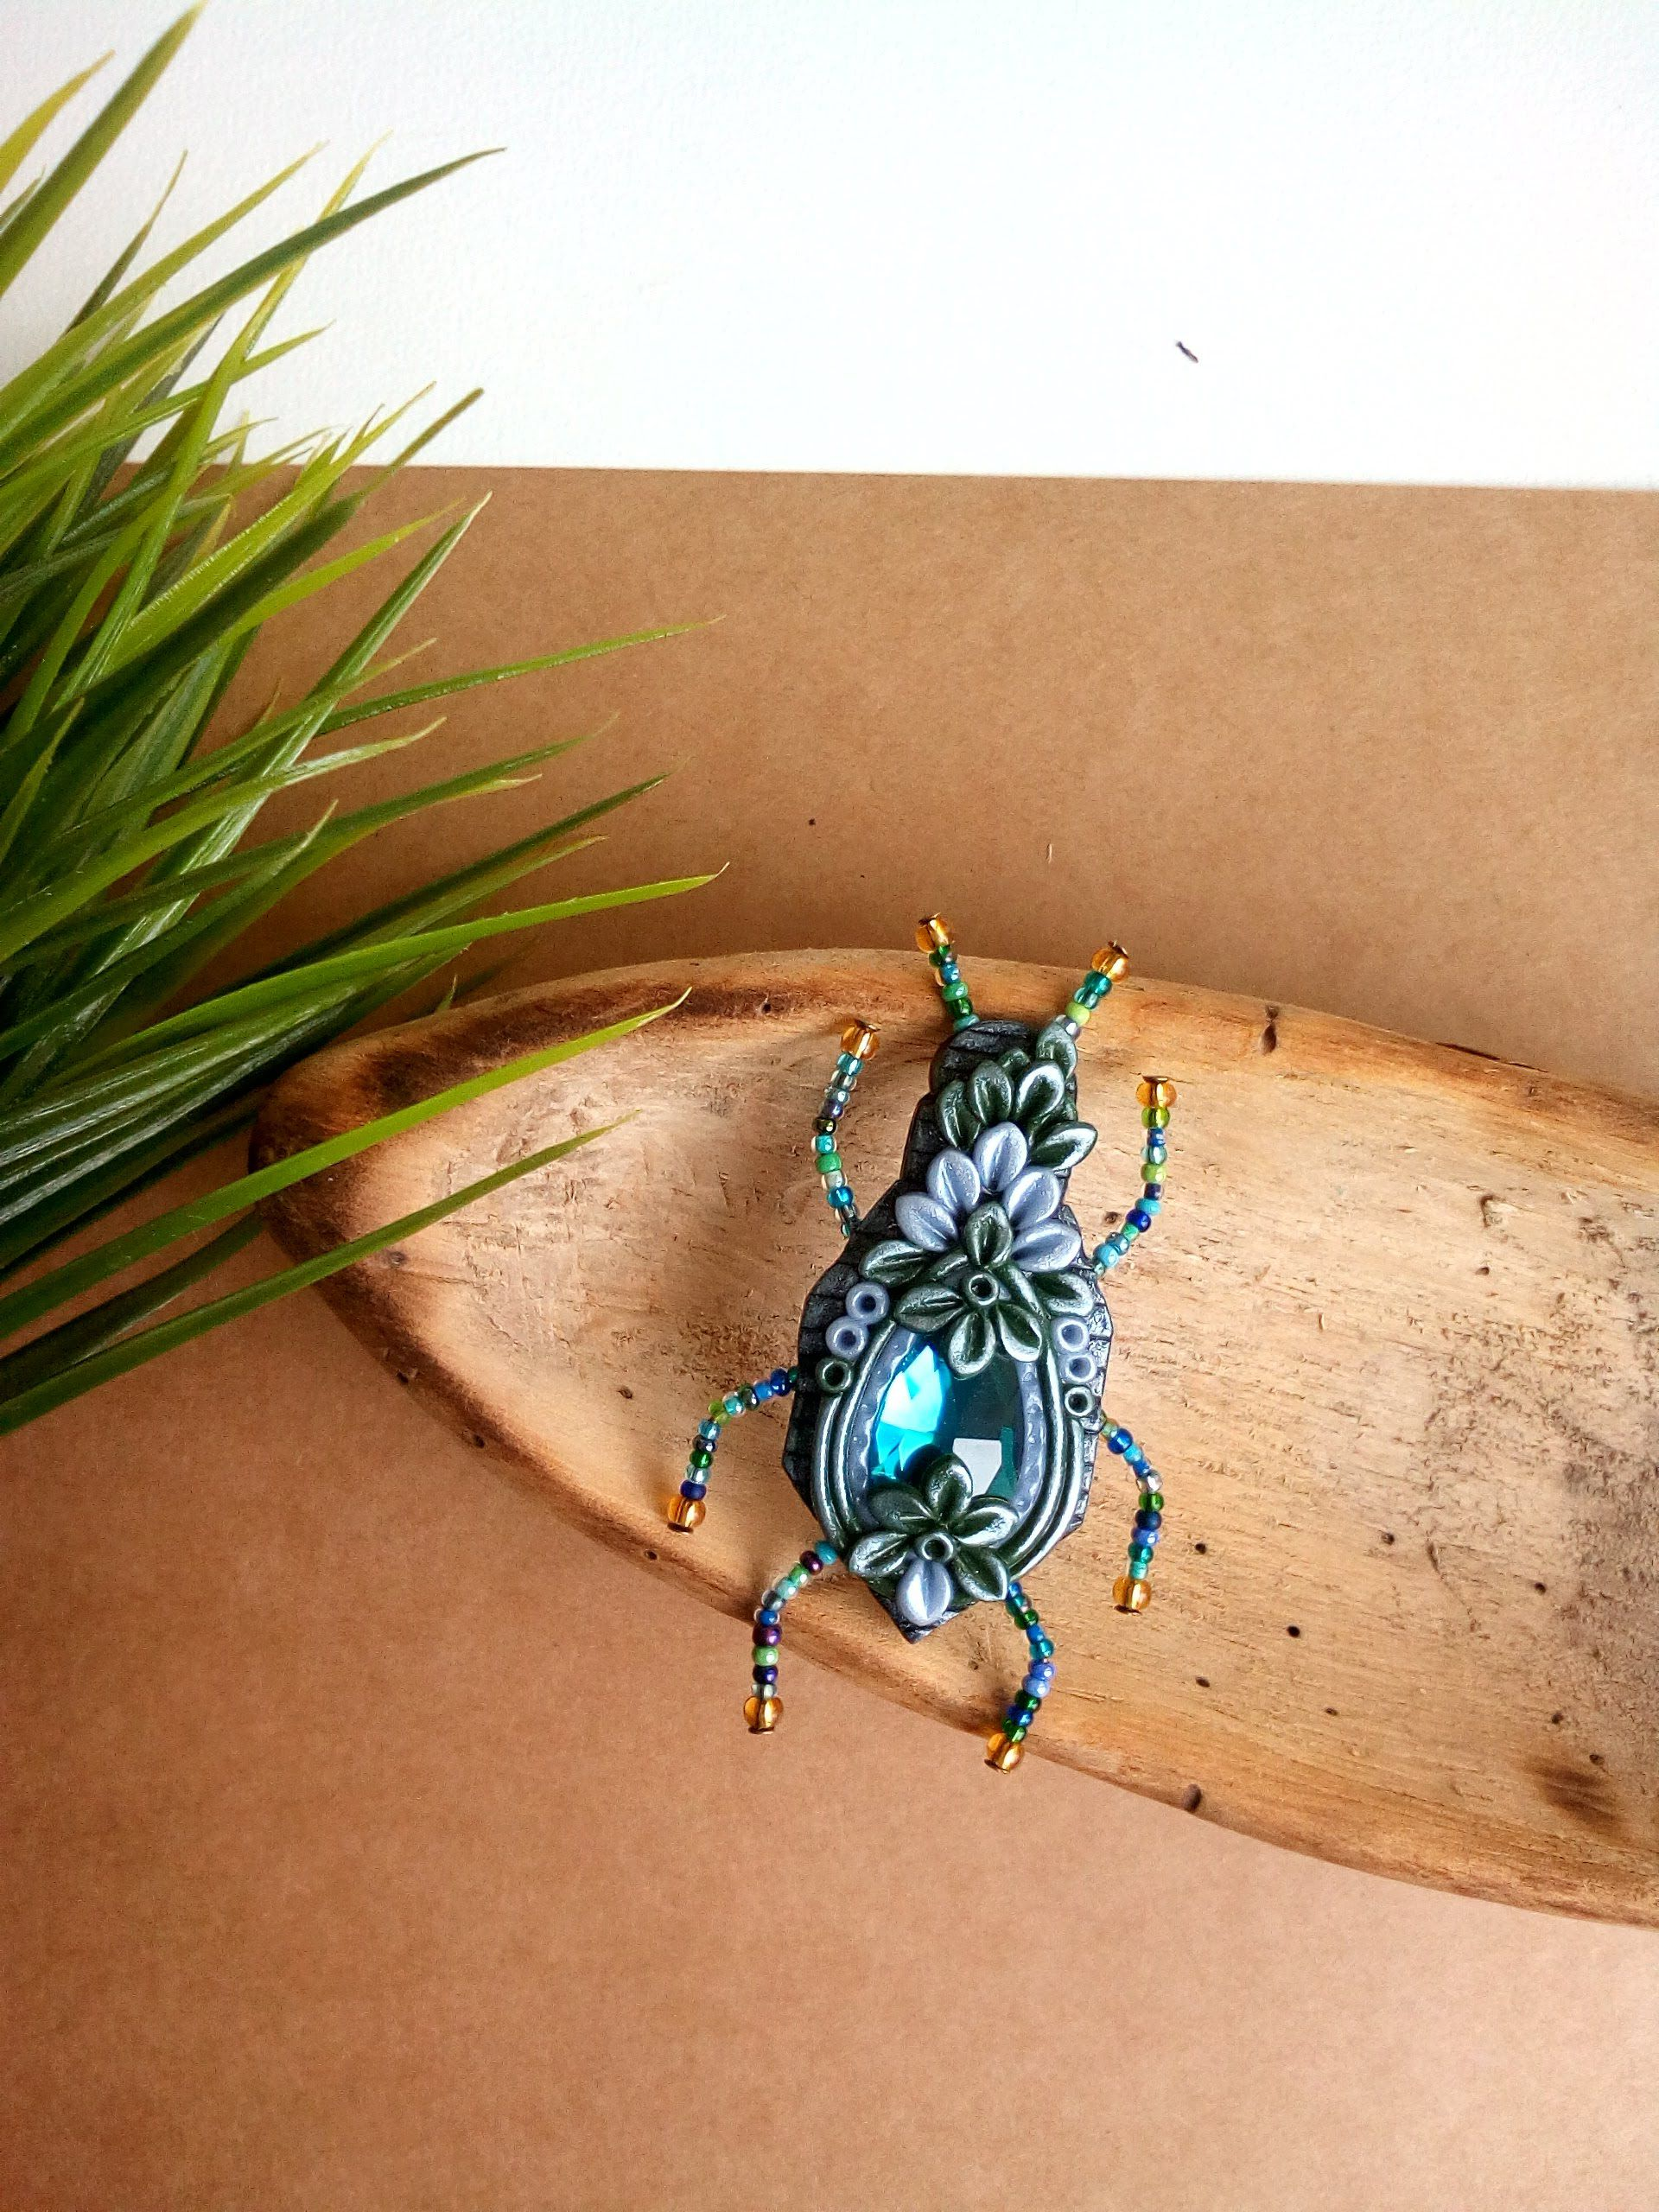 insect bugpin beetlebrooch insectbrooch black glasscrystal polymerclay beetle bug blue olivegreen blackbrooch insectjevelry